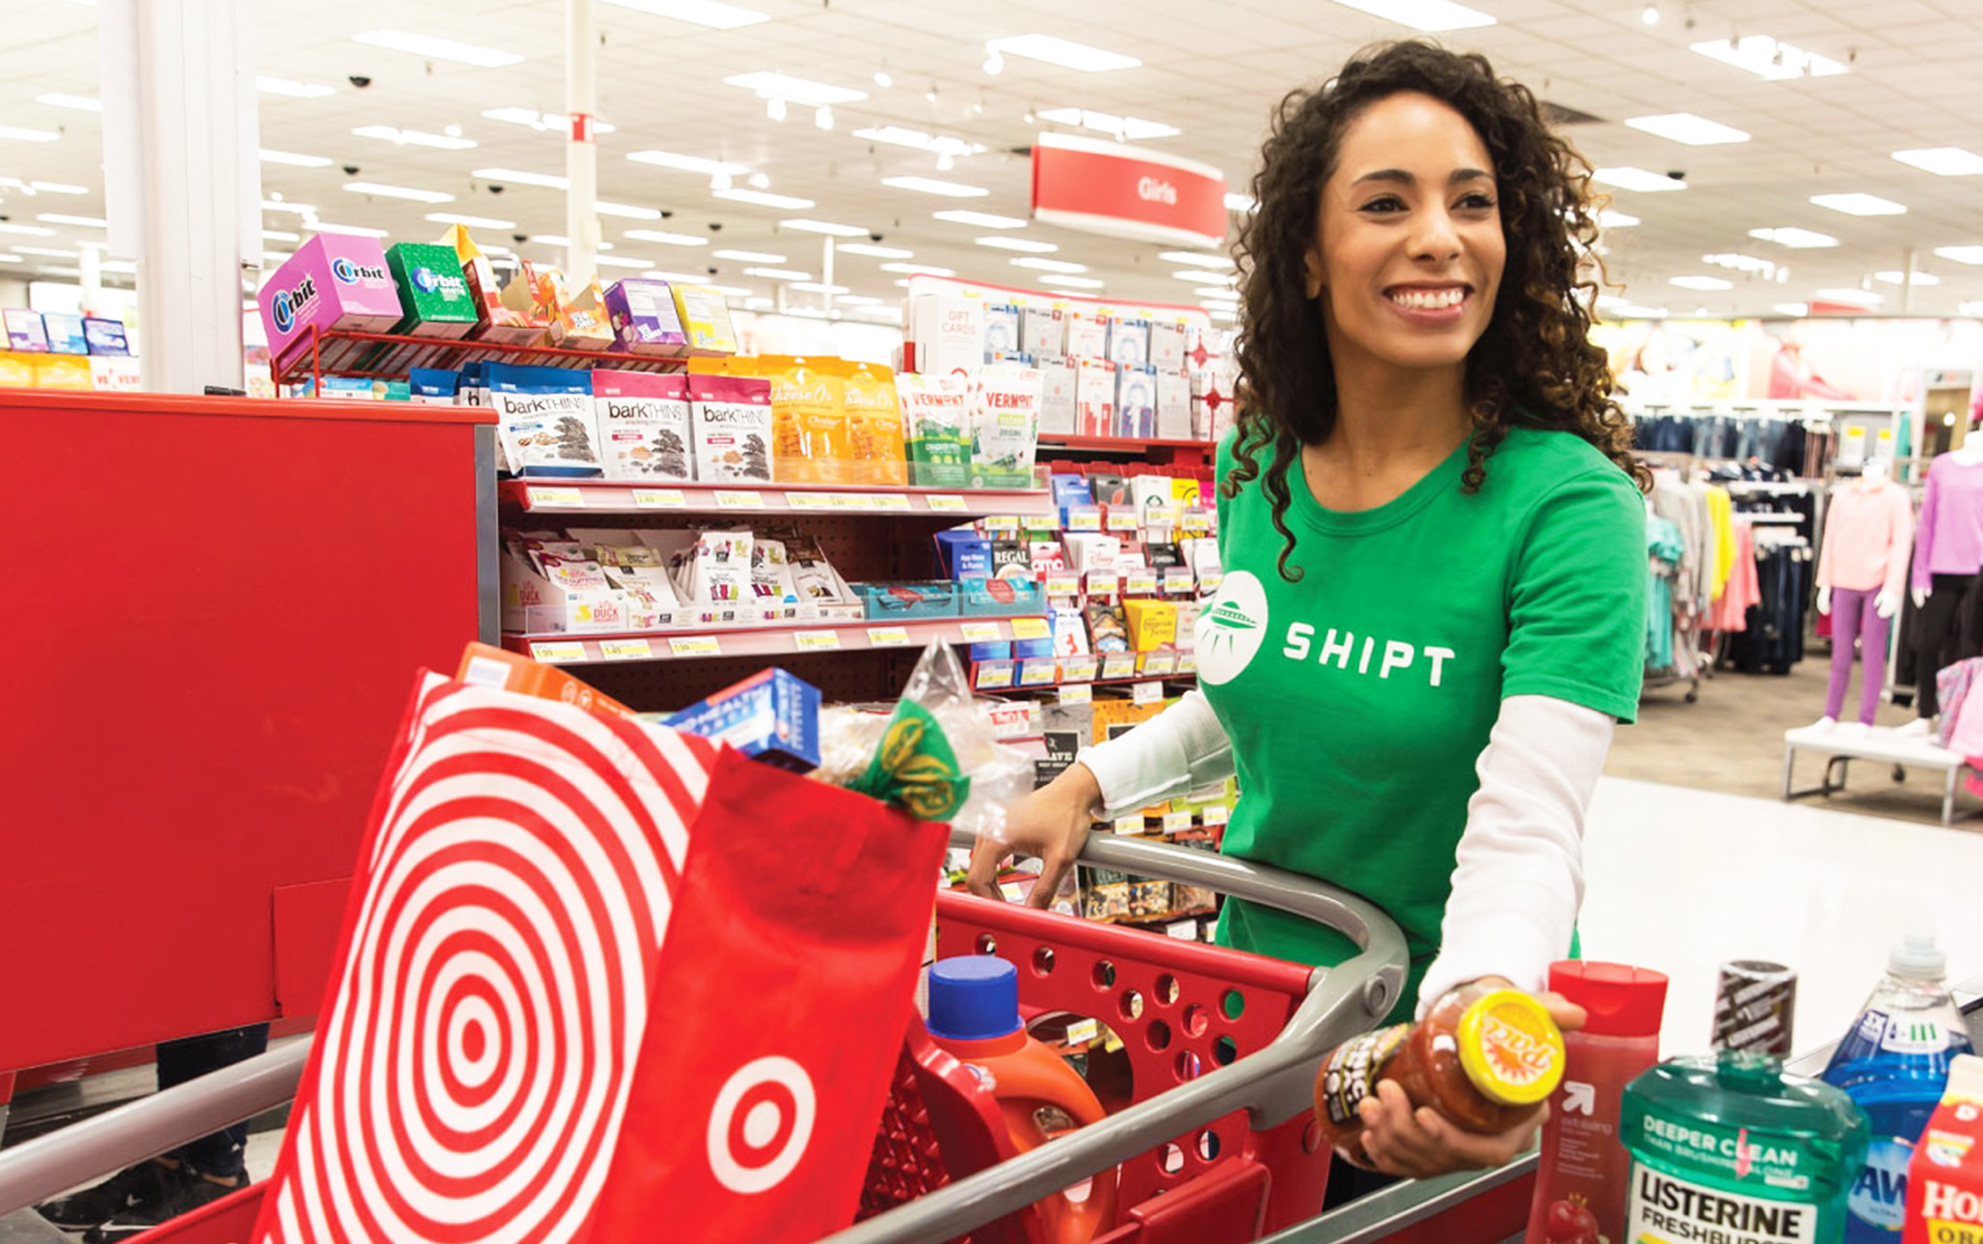 Target Now Offers Same-Day Shipping Through Their App